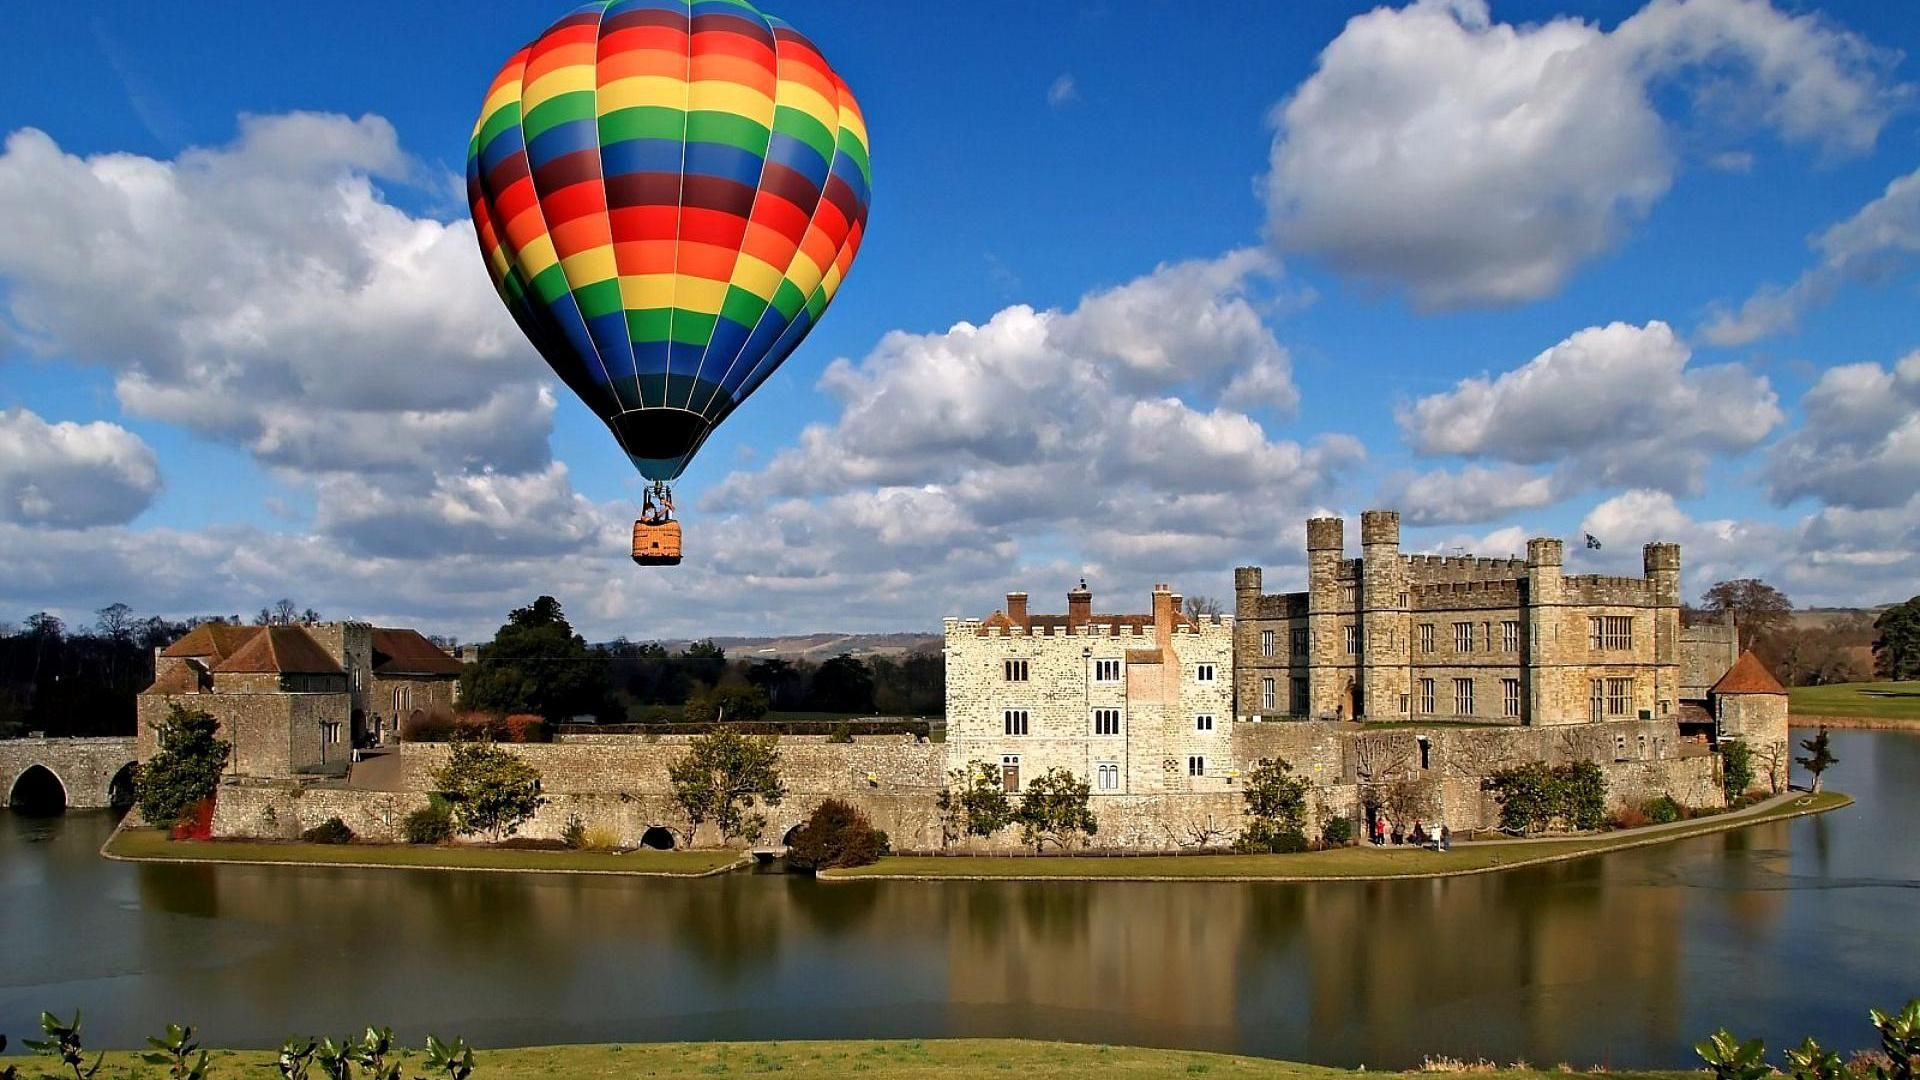 colorful hot air balloon wallpaper - Google Search ...